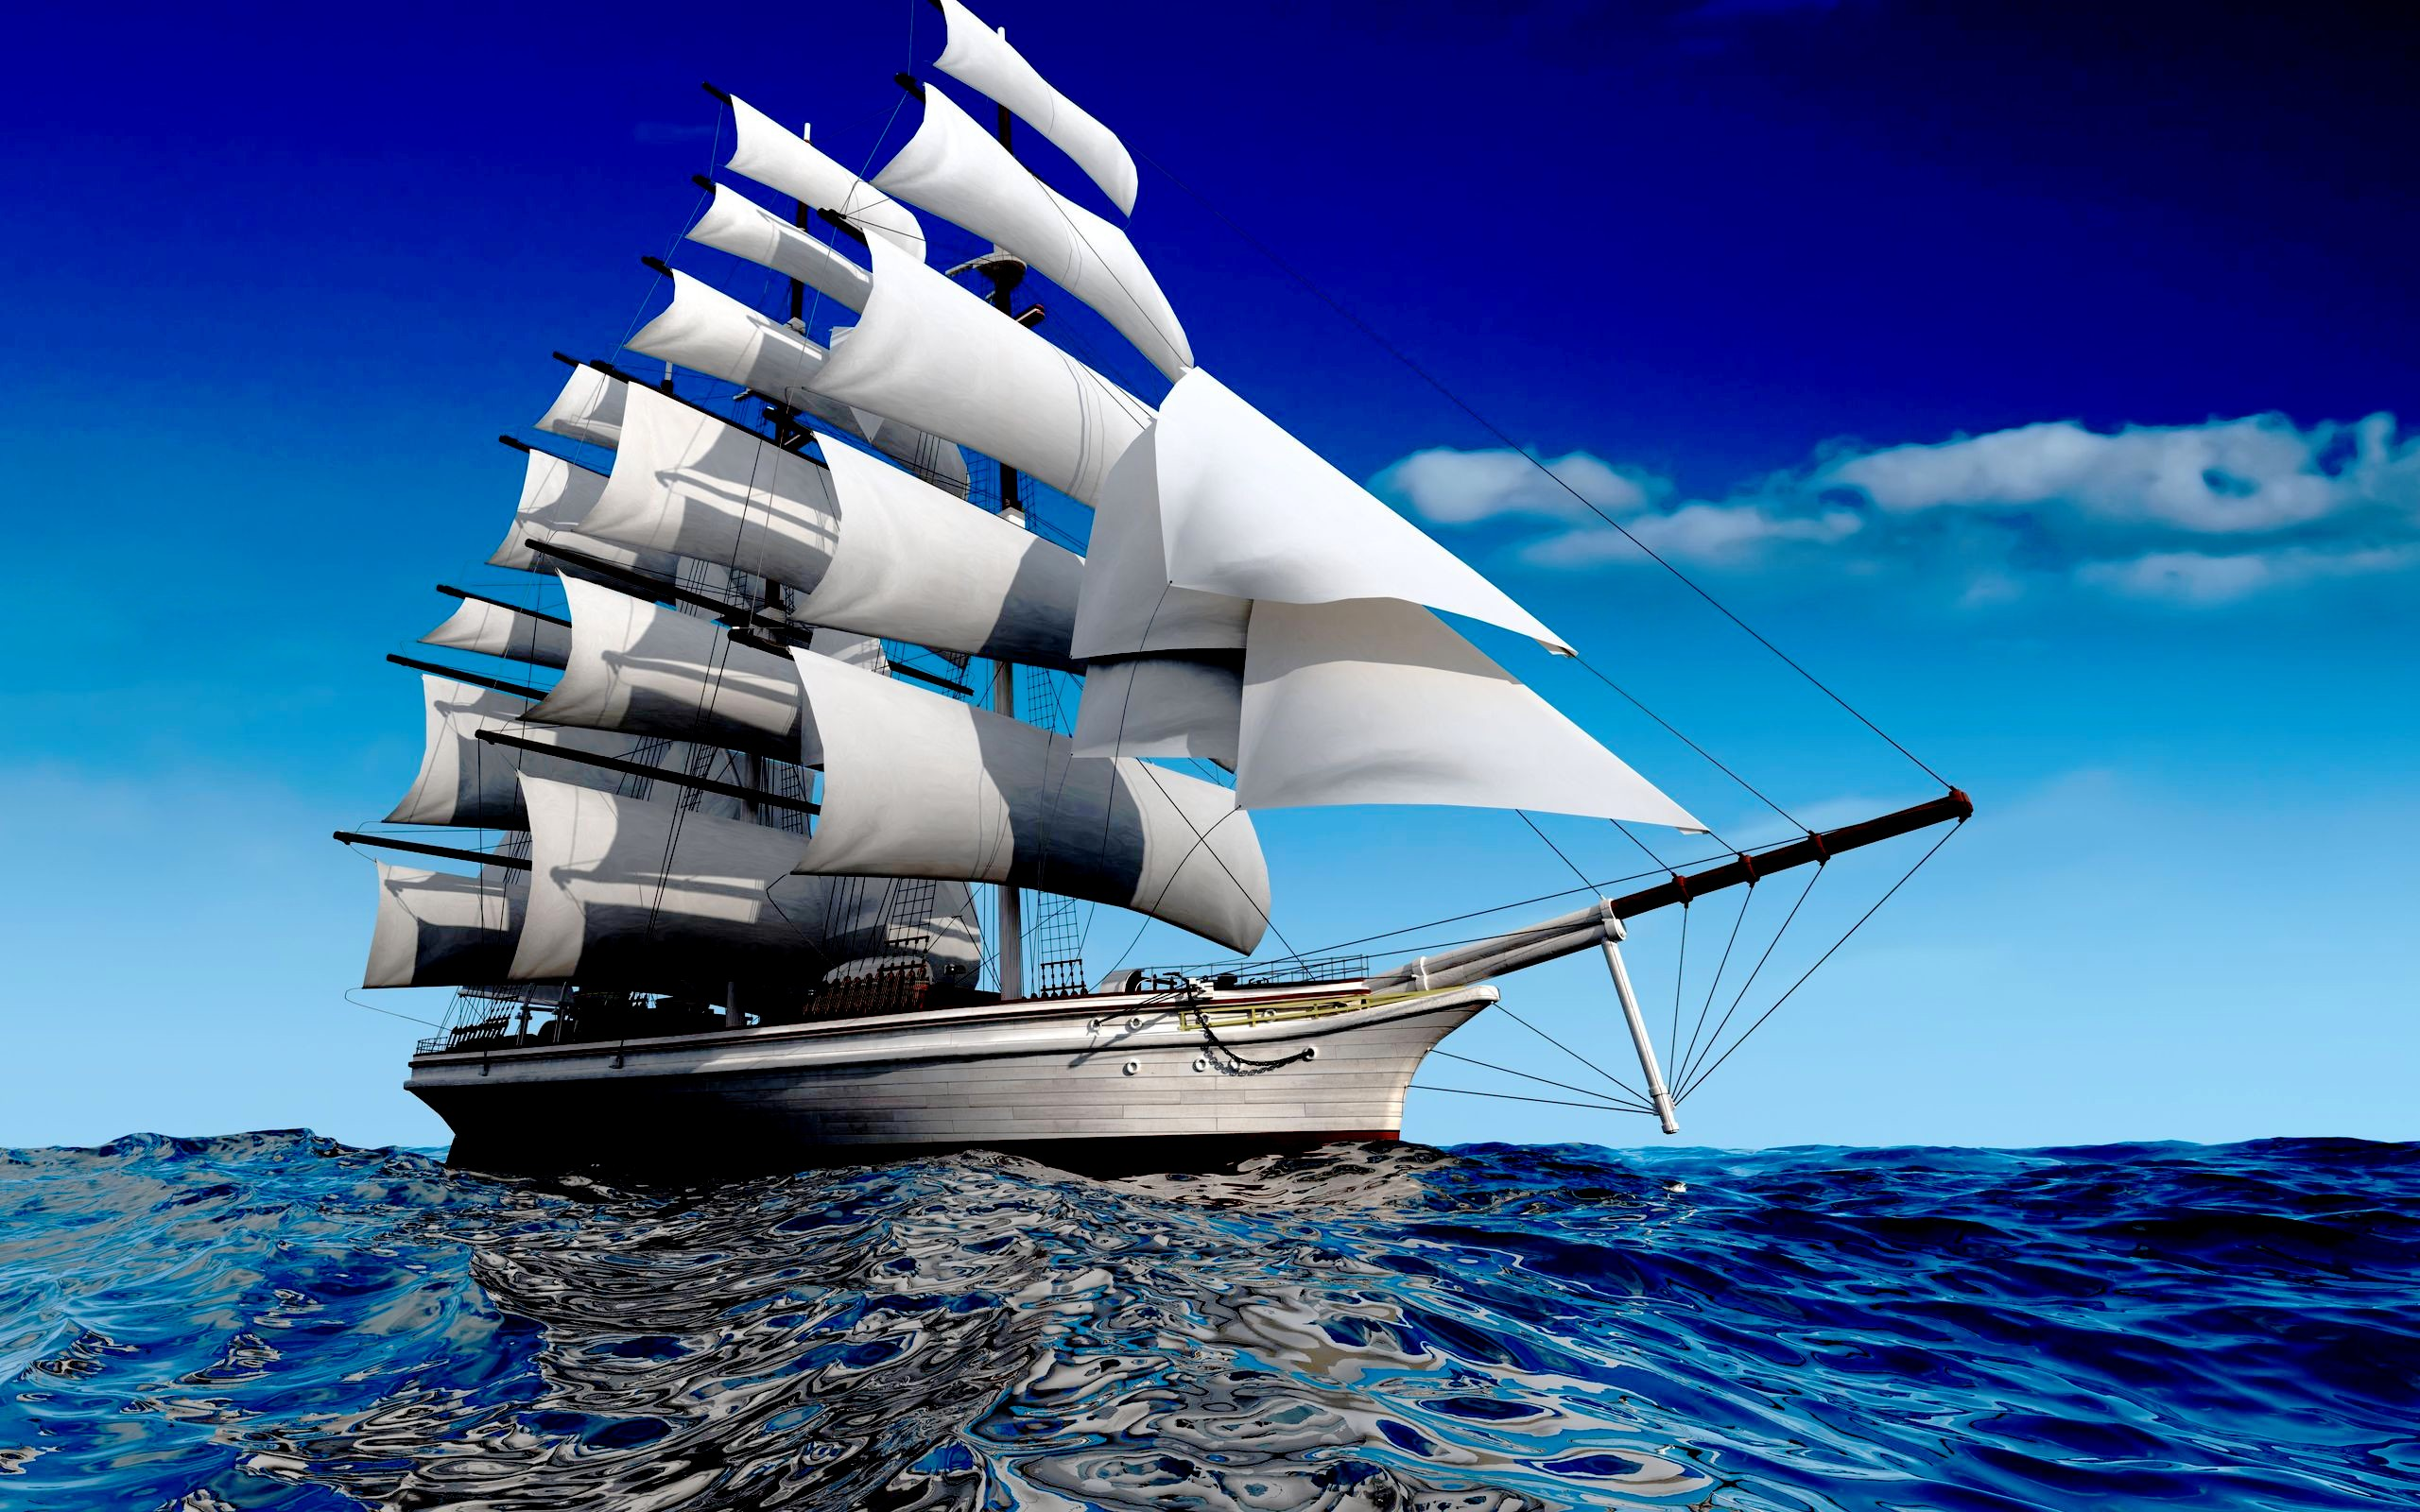 sailboat wallpaper 7783